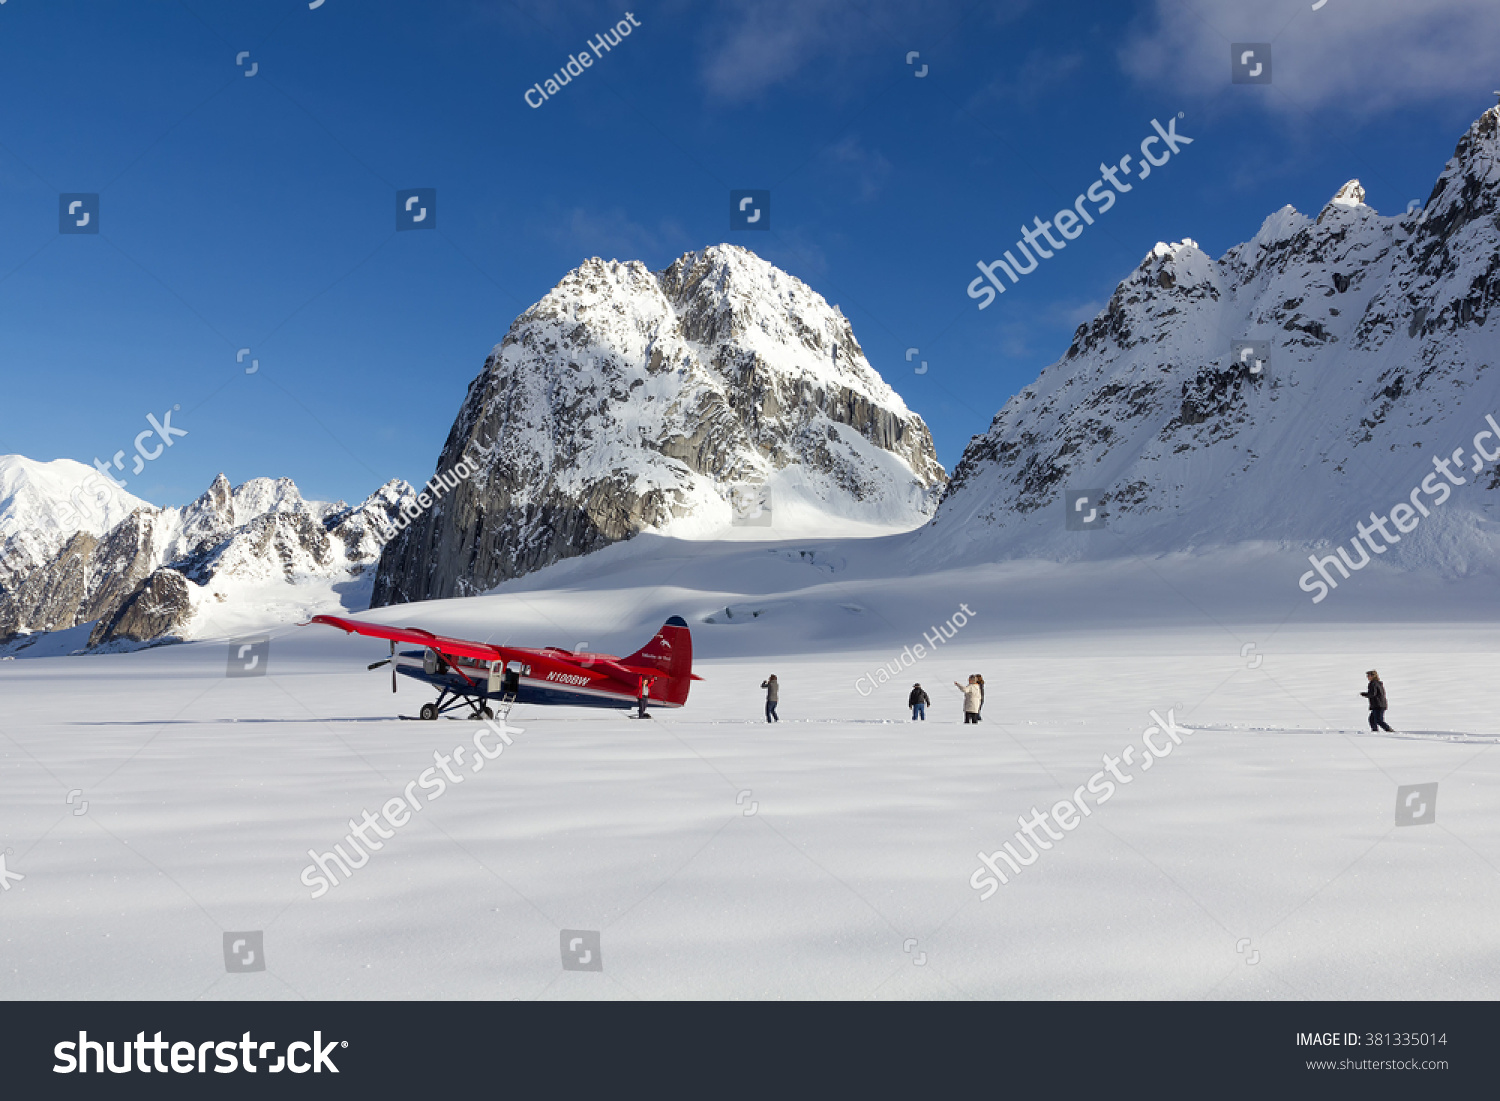 DENALI NATIONAL PARK, ALASKA, USA - SEPTEMBER 14, 2013: Tourists walking in deep snow after plane landing on Pika Glacier near Mount McKinley.